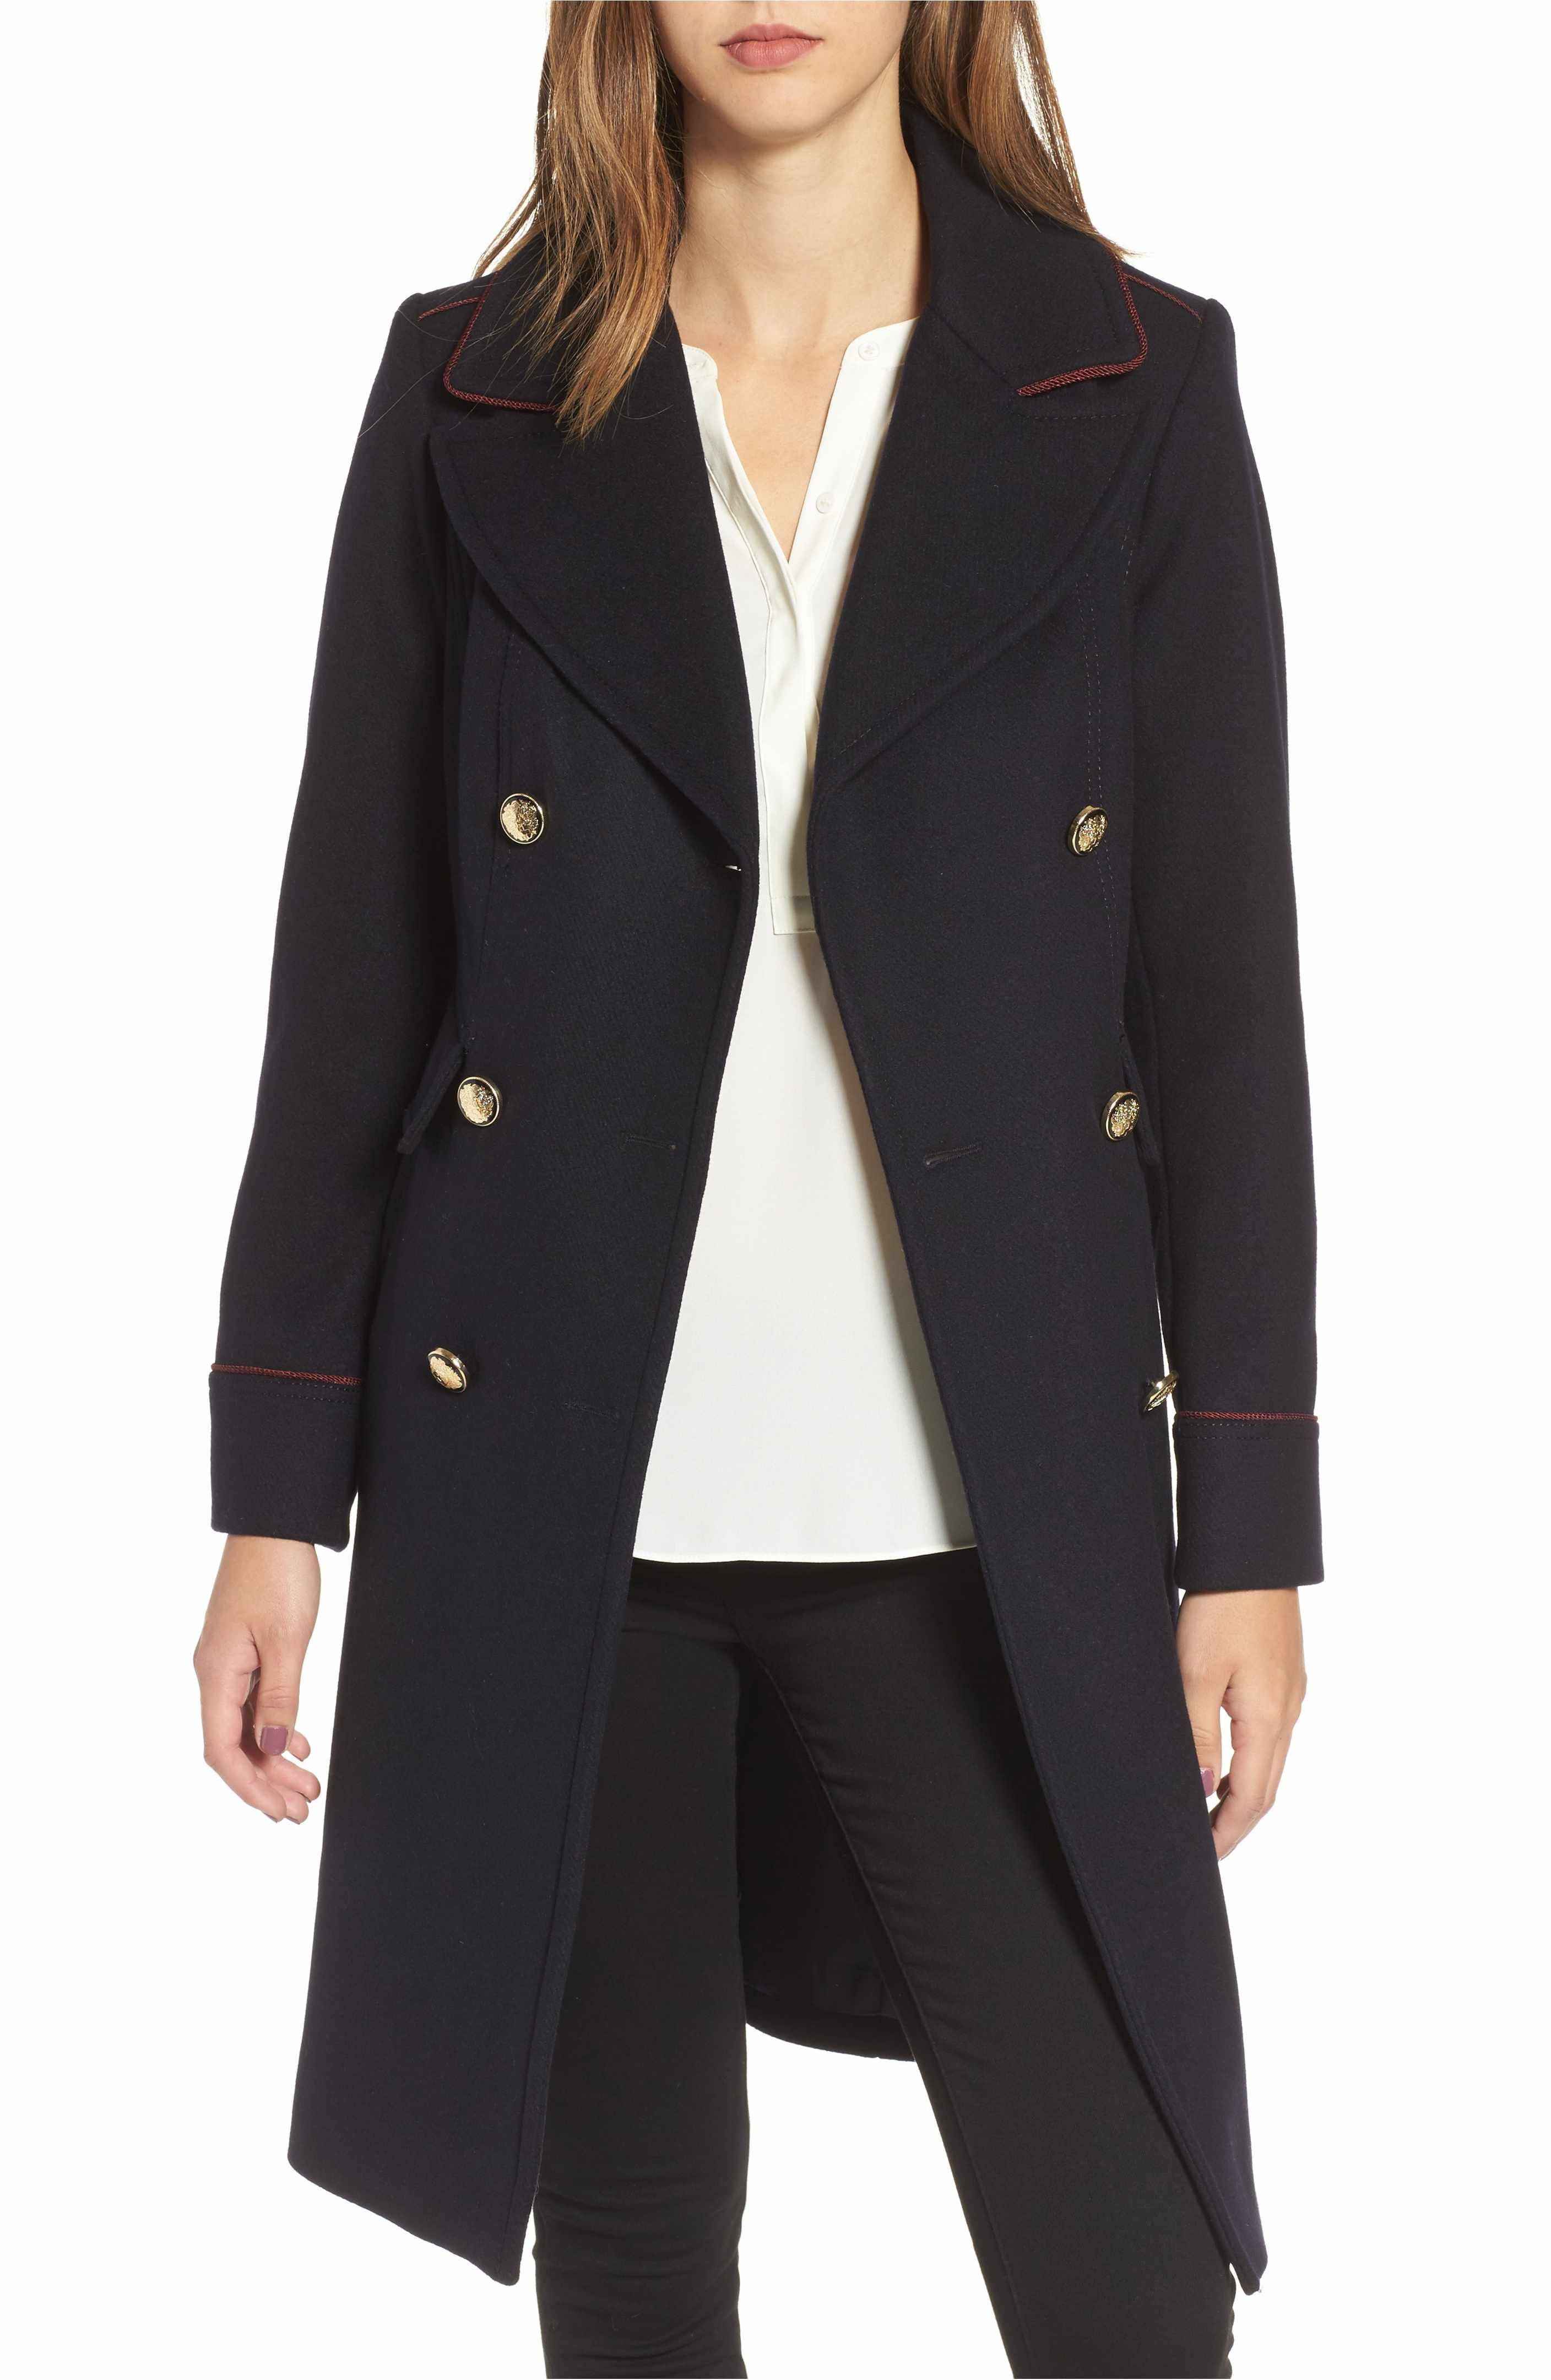 cd000145870 Main Image - Vince Camuto Double Breasted Utility Coat   Outerwear ...